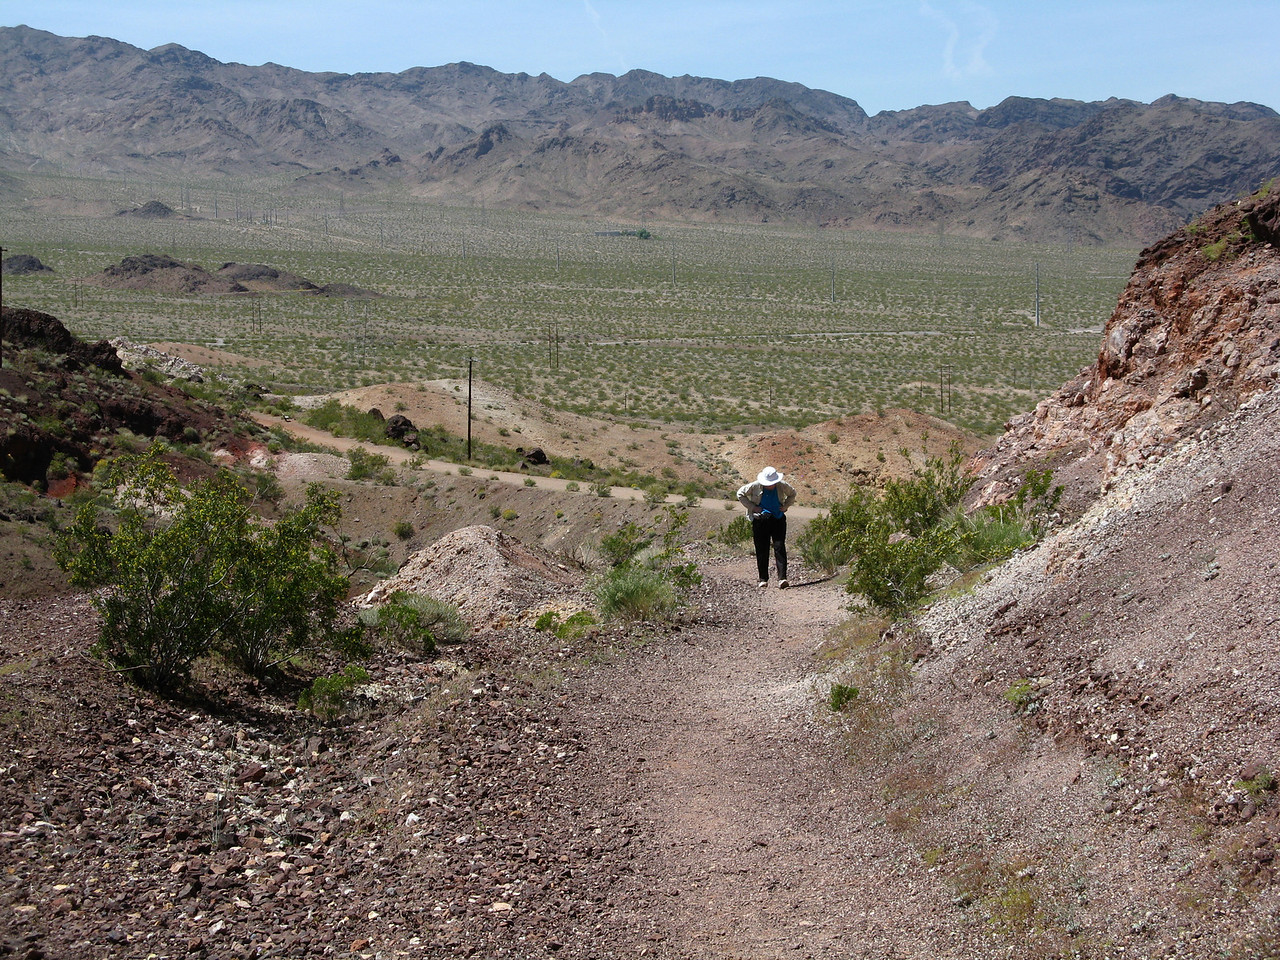 The start and end point of our 10 kilometer volkswalk was the Hacienda Casino and Hotel.  This is the short but steep path from the rail trail to the hotel.<br /> <br /> This was a great day for a spring walk on a historic rail trail to one of the world's greatest engineering achievements -- Hoover Dam.